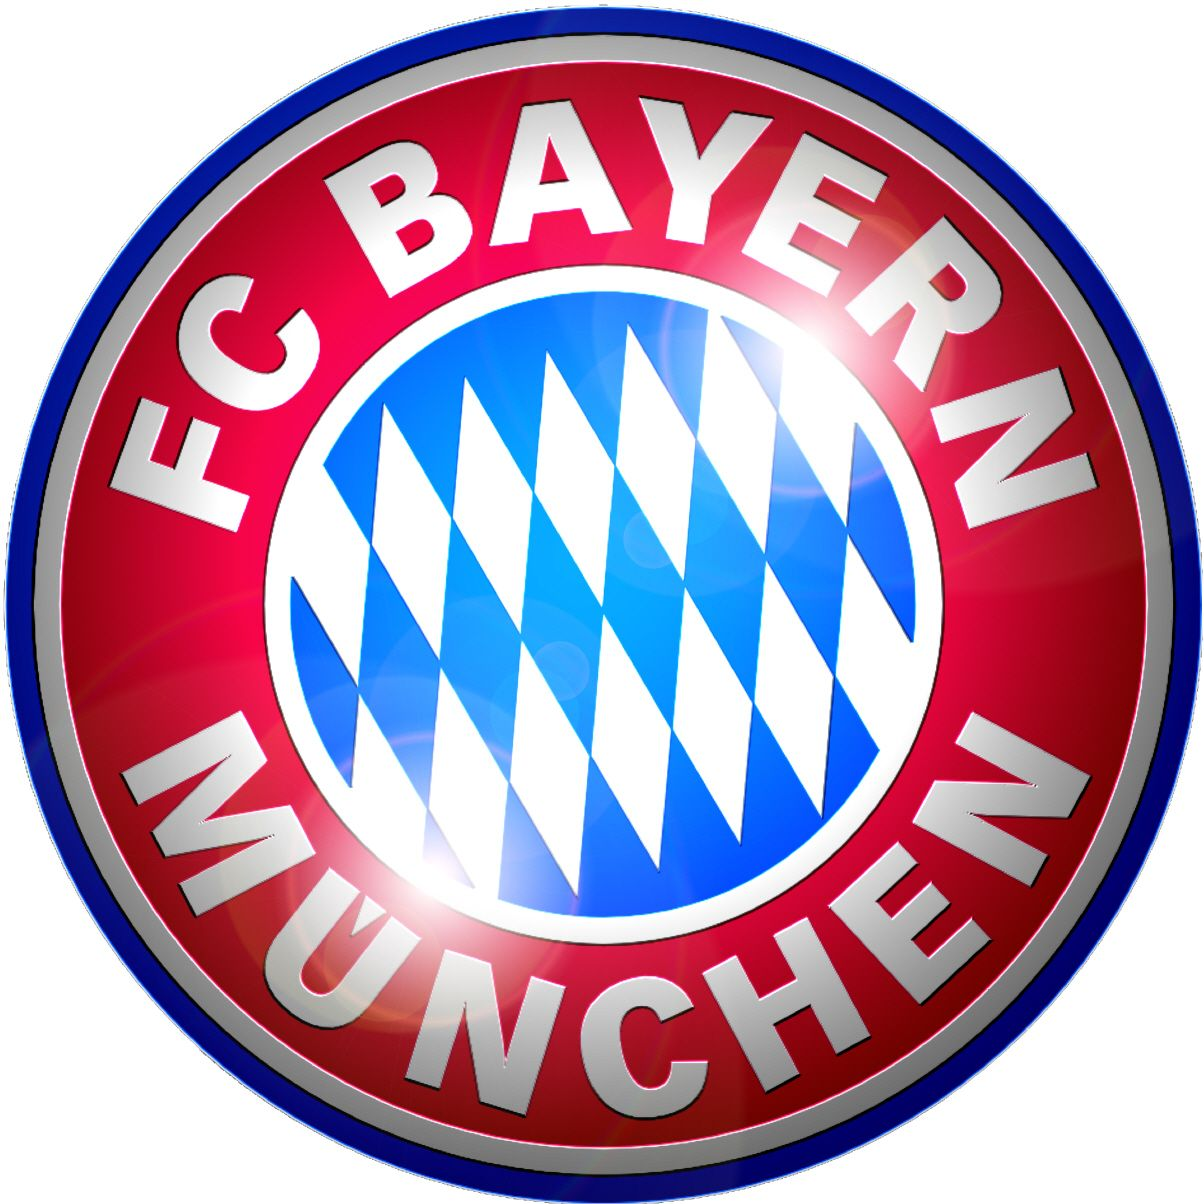 fc bayern m nchen logo 3d logos y marcas pinterest. Black Bedroom Furniture Sets. Home Design Ideas